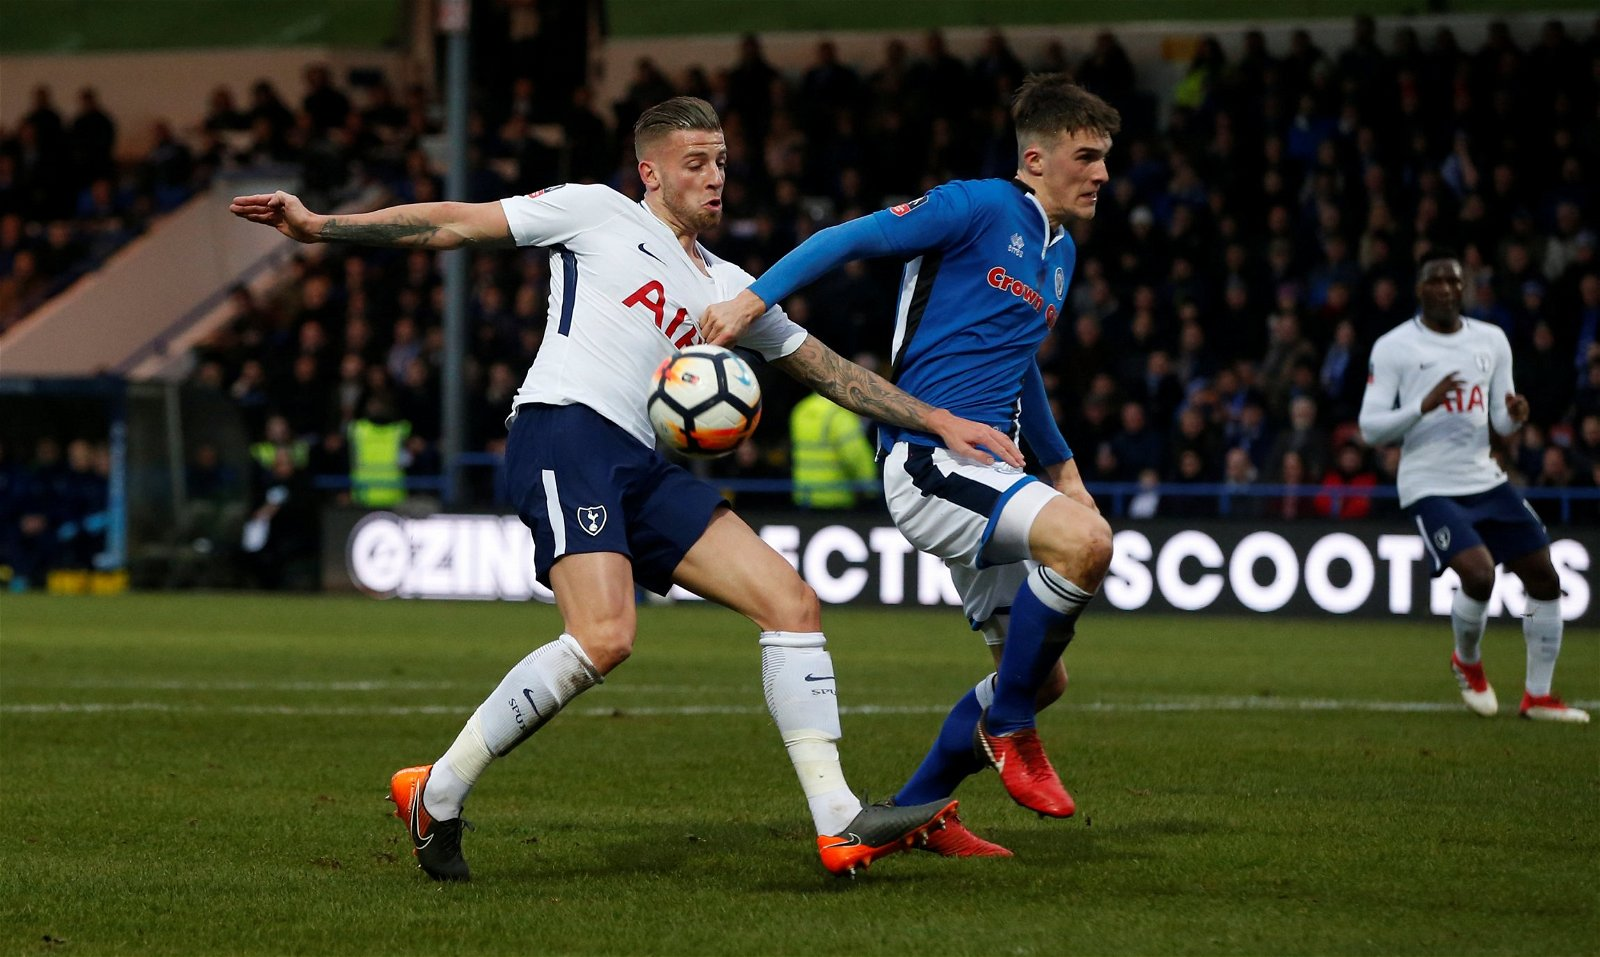 Toby Alderweireld in action for Tottenham Hotspur